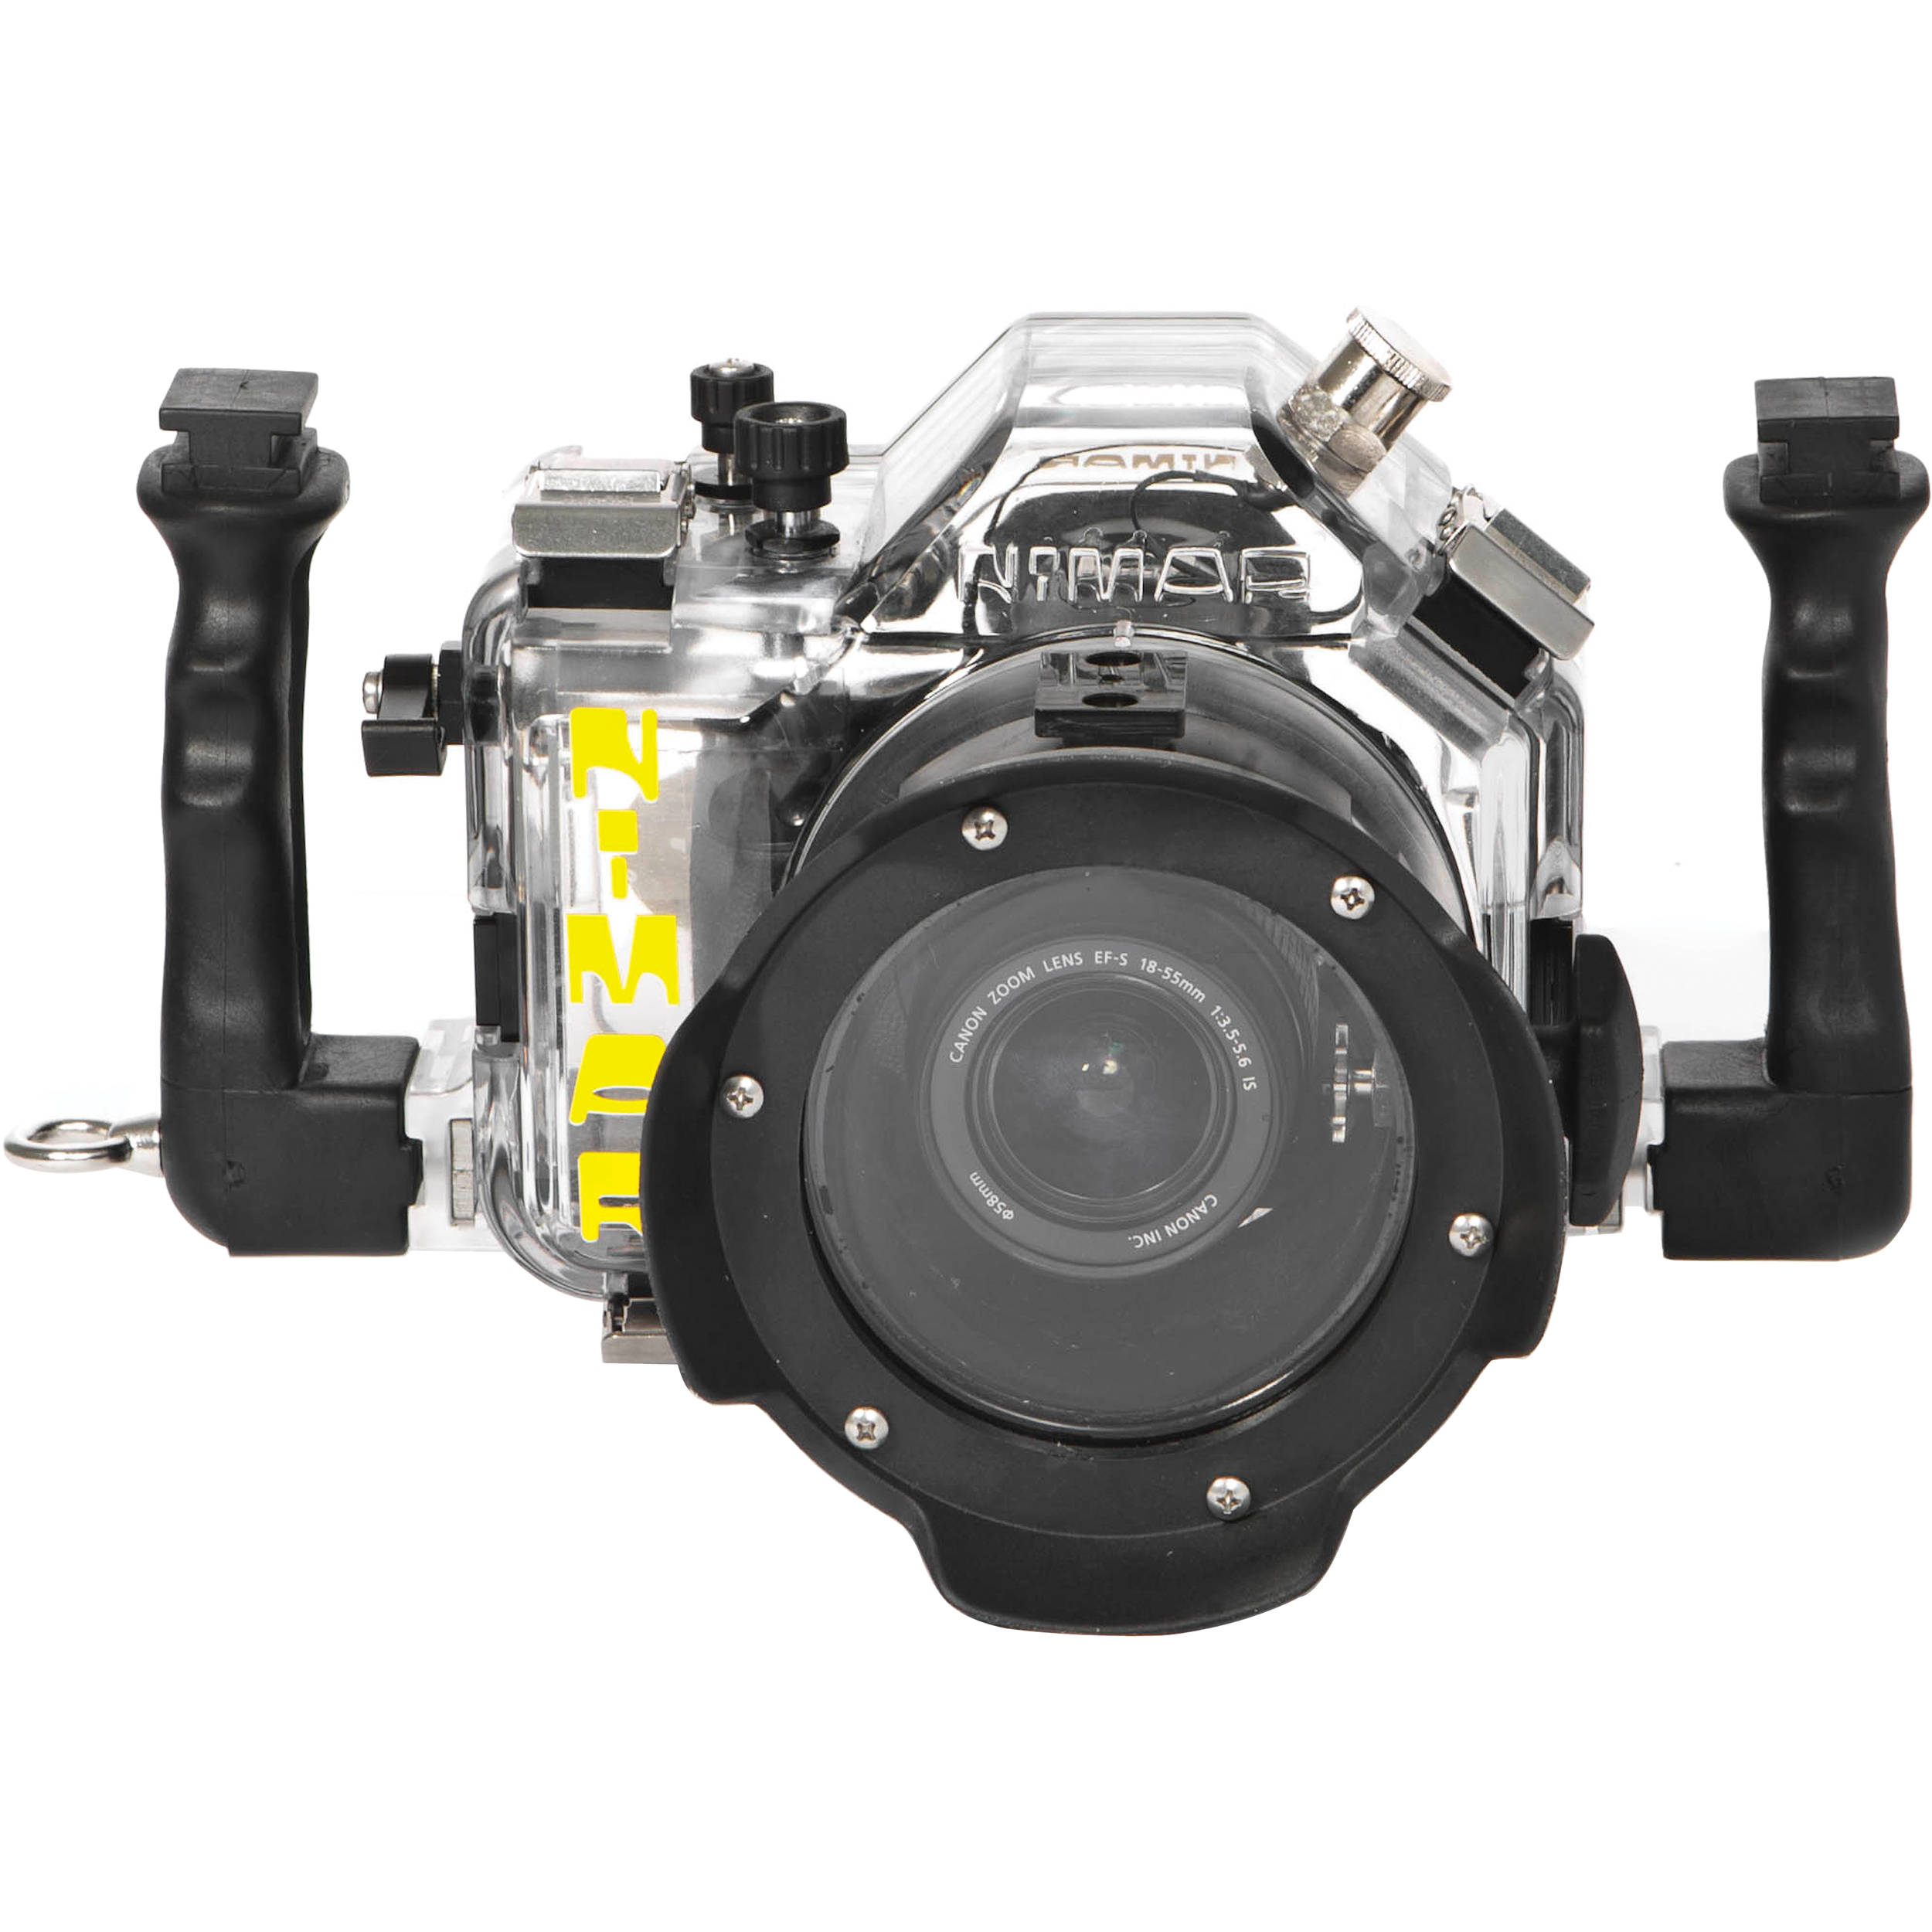 Camera Dslr Camera Without Lens canon 500d lens bh photo video nimar underwater housing for eos dslr camera without port